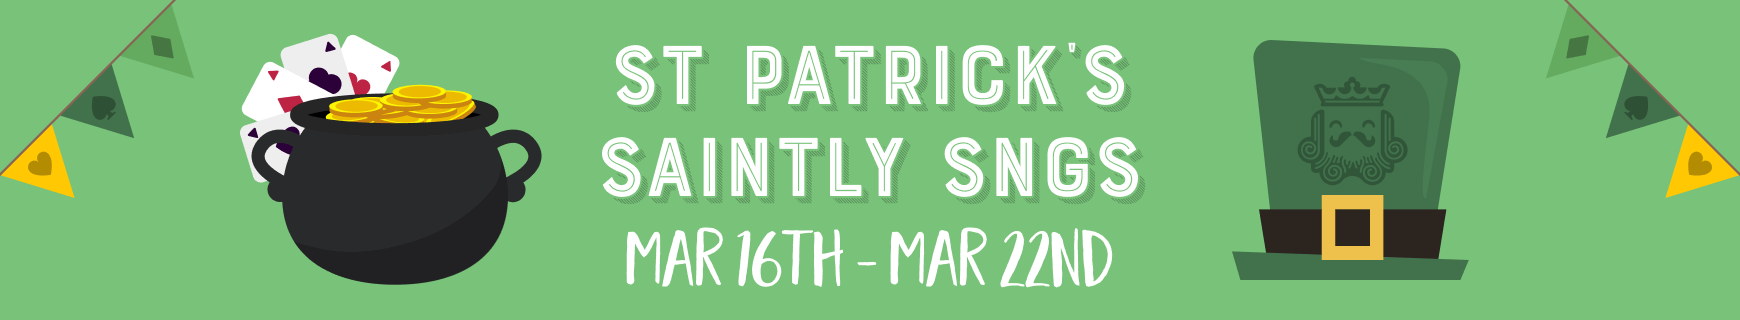 St patrick's saintly sngs 2020   dashboard %28870 x 160%29 2x